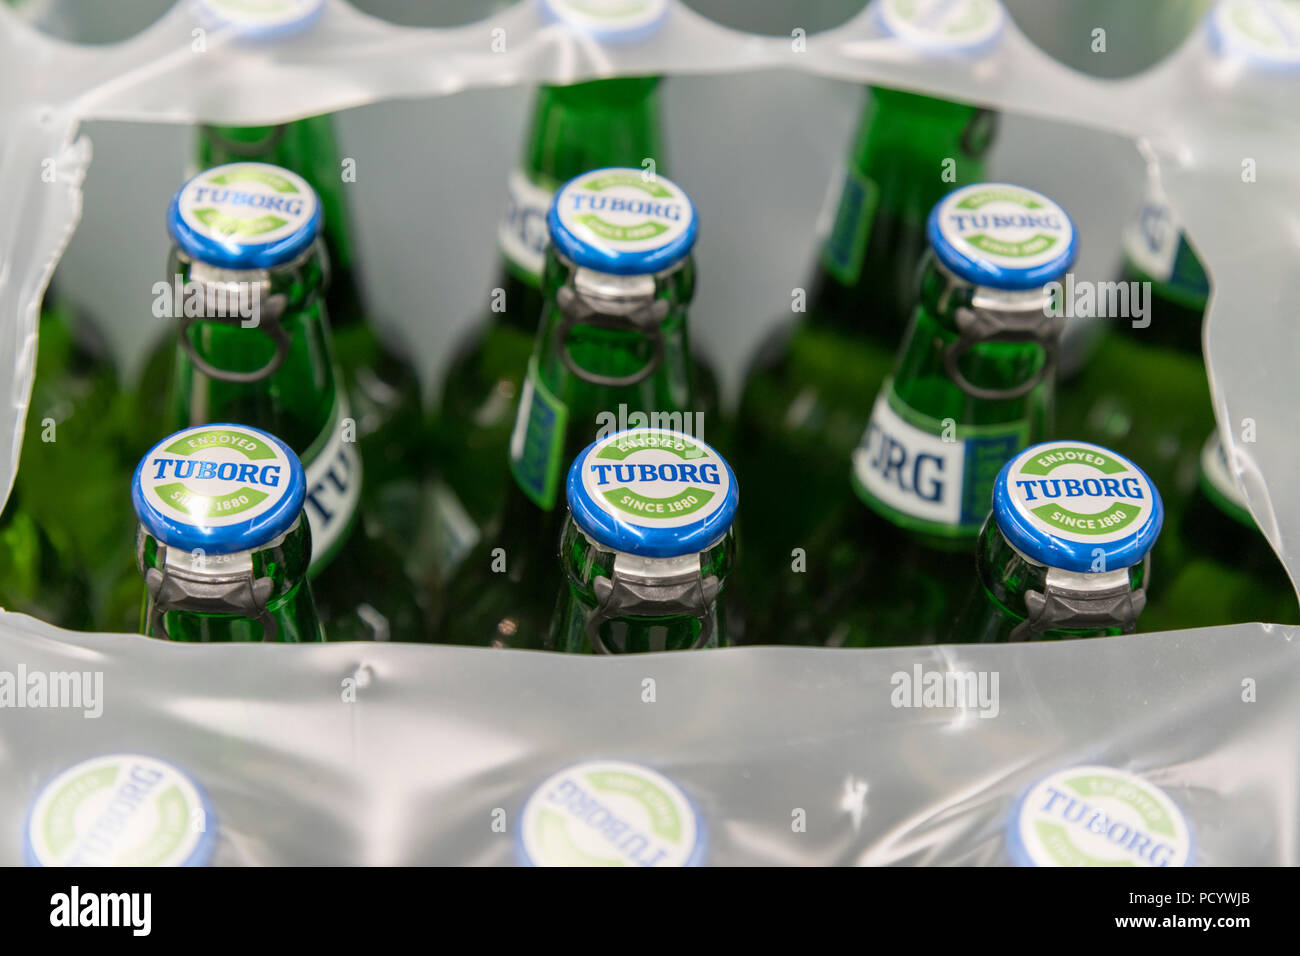 Tuborg Stock Photos Tuborg Stock Images Alamy